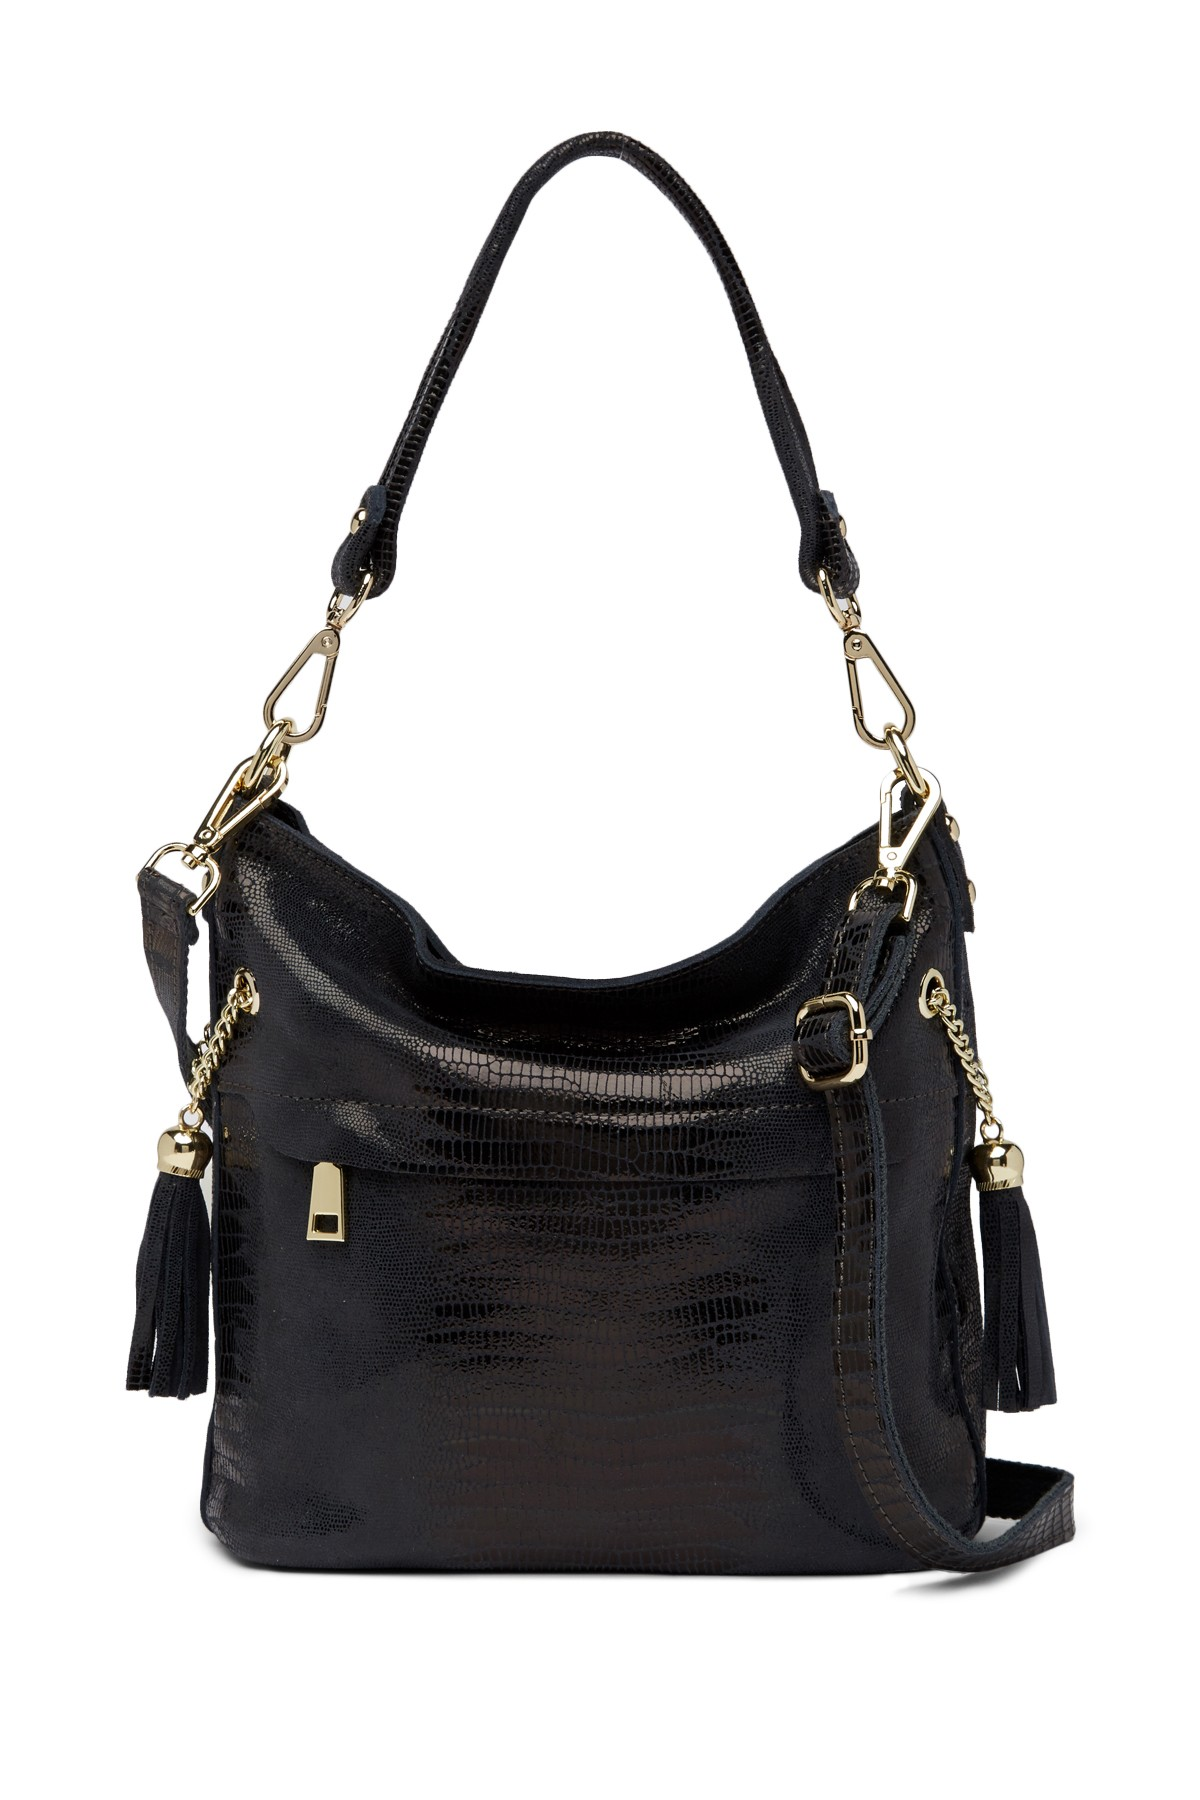 4559085fc5 Tiffany and Fred Lizard Embossed Leather Hobo Bag | Fashion Style ...